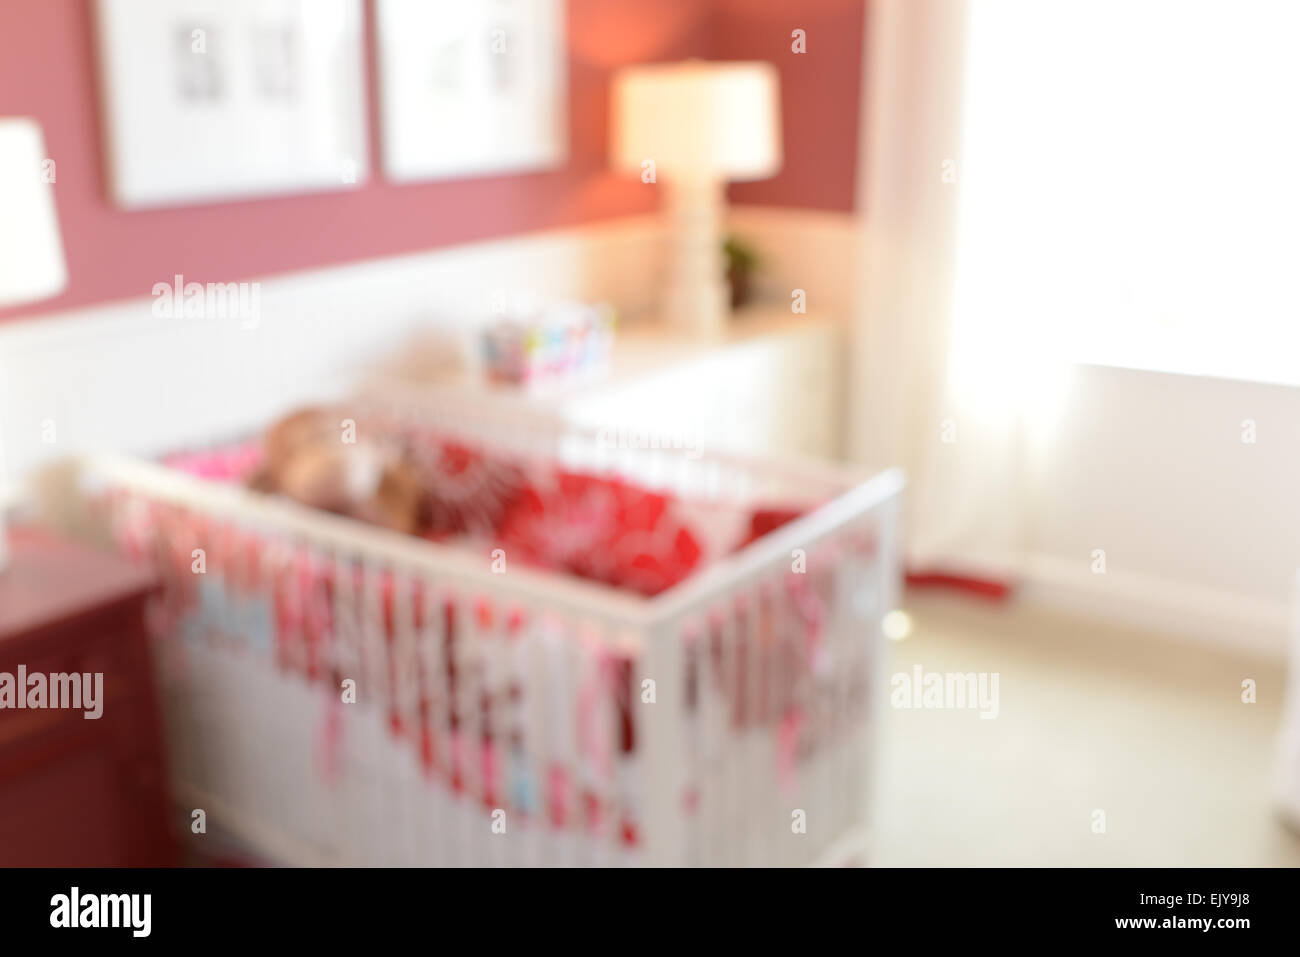 retro baby furniture. Blur Baby Crib With Retro Instagram Style Filter Furniture